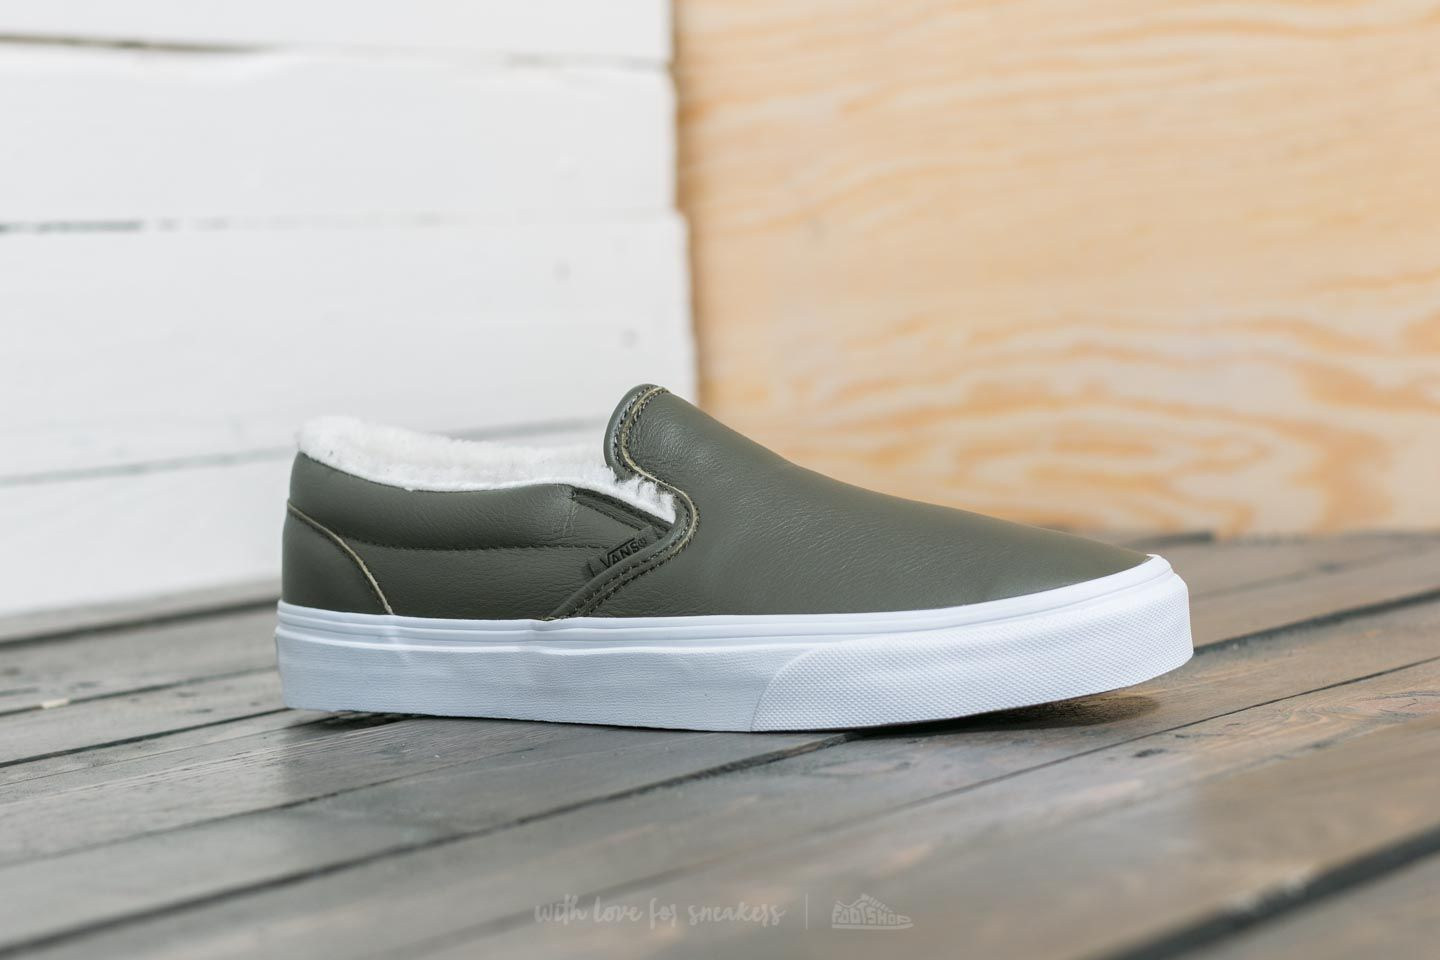 c1dadba0d5 Vans Classic Slip-On (Leather) Grape Leaf  True White at a great